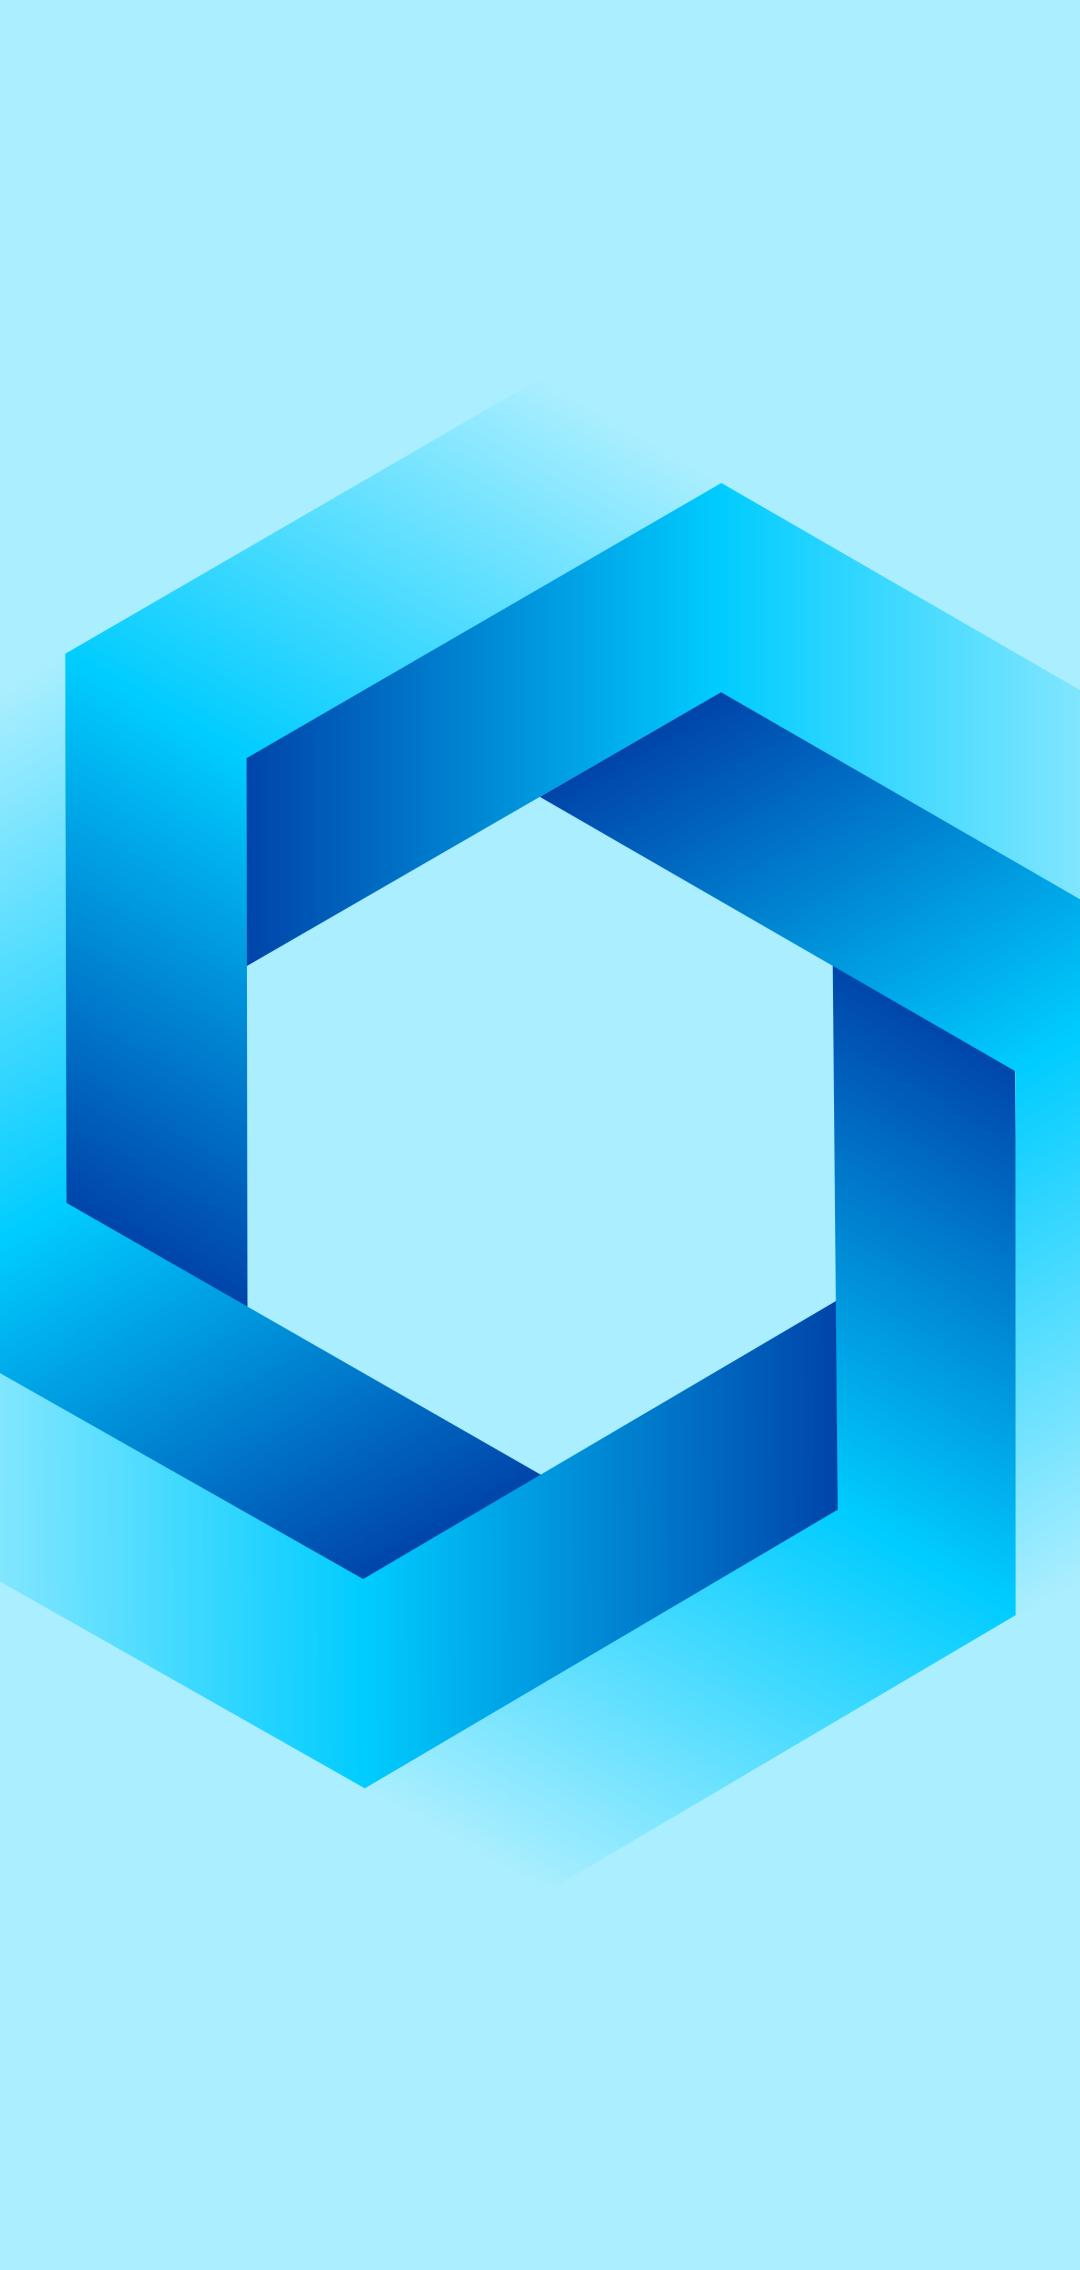 1080x2270 Azure Hexagon 1080x2270 Resolution Wallpaper, HD Artist 4K